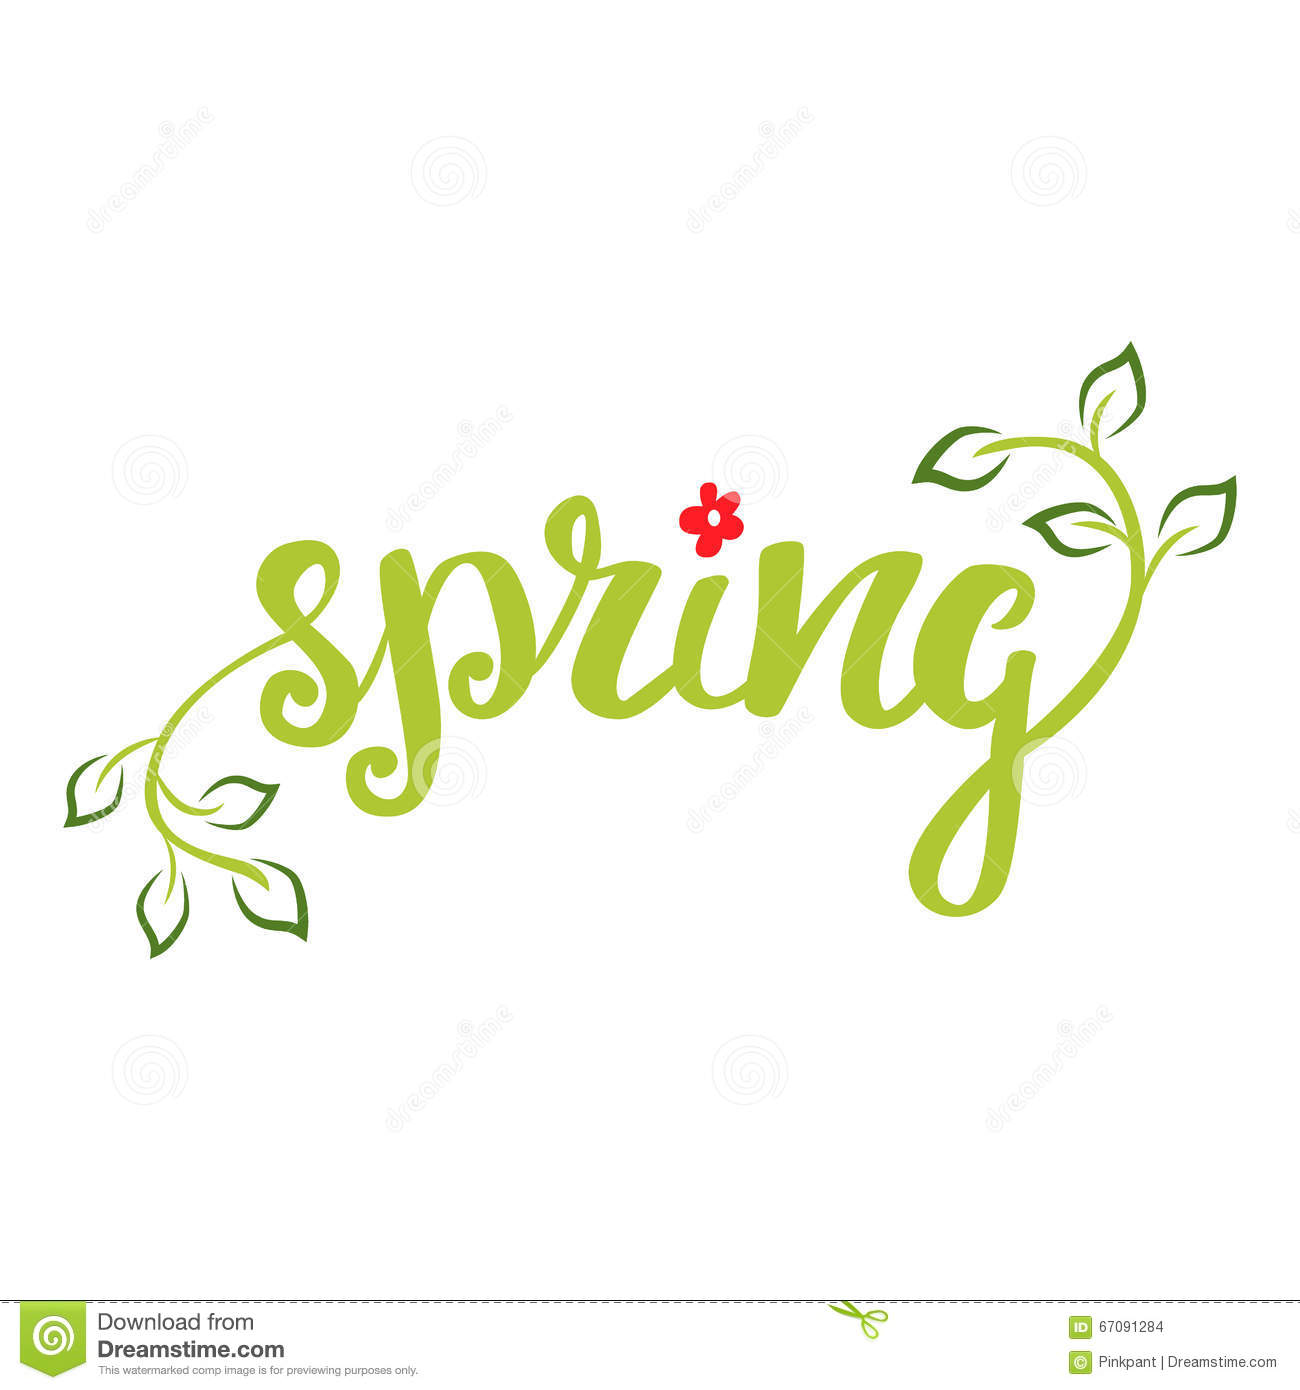 ... : Spring. Hand lettering, calligraphy inscription with spring leaves